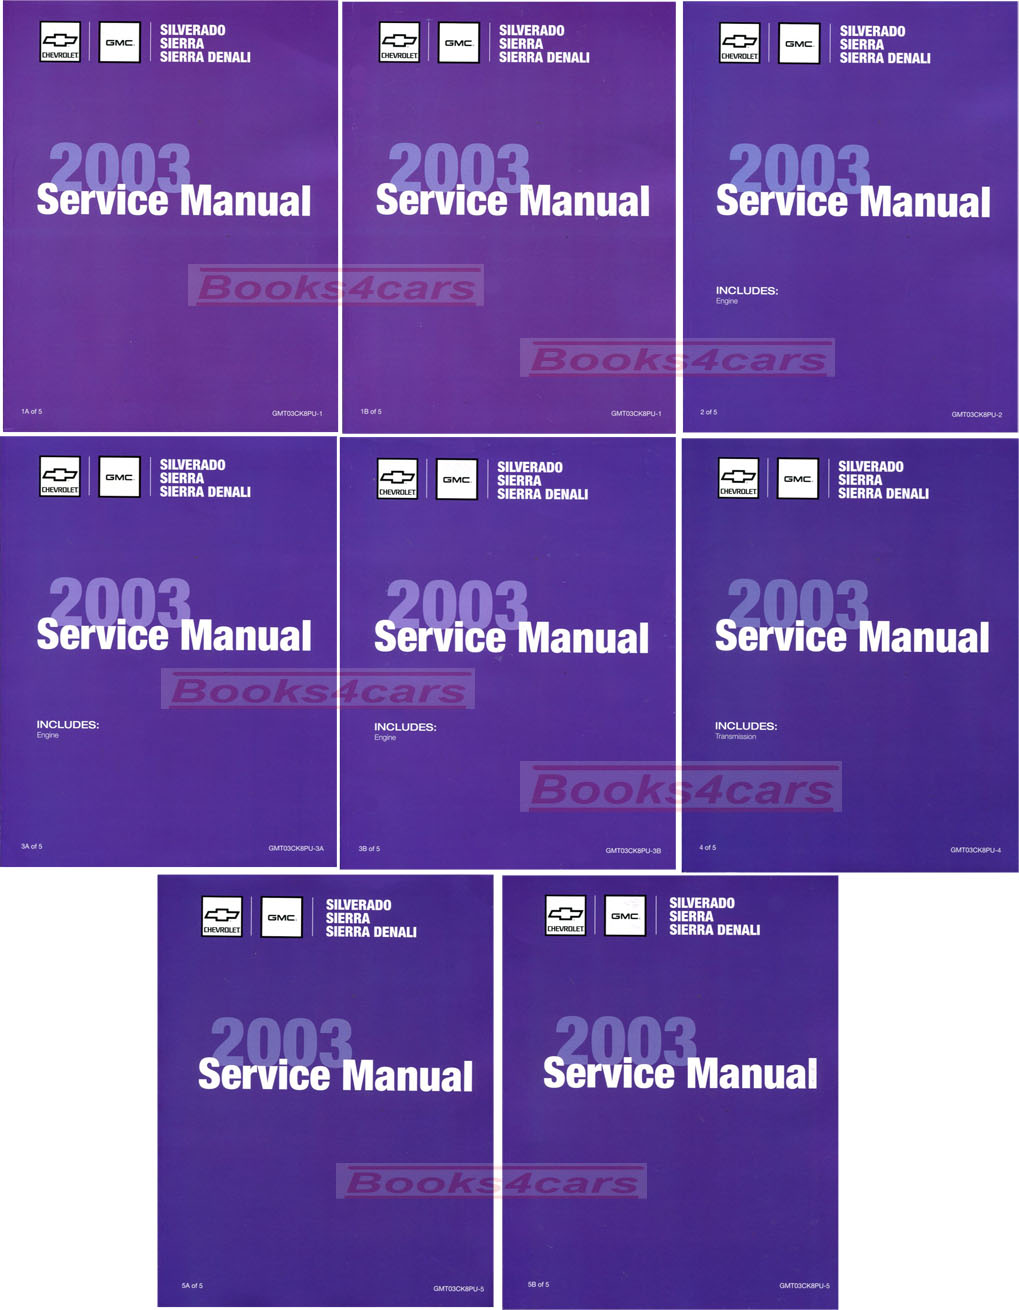 2003 Silverado Sierra Denali Shop Service Repair Manual by Chevrolet & GMC  Truck includes HD and Diesel Duramax Engine (B03_GMT03CK8PU) ...